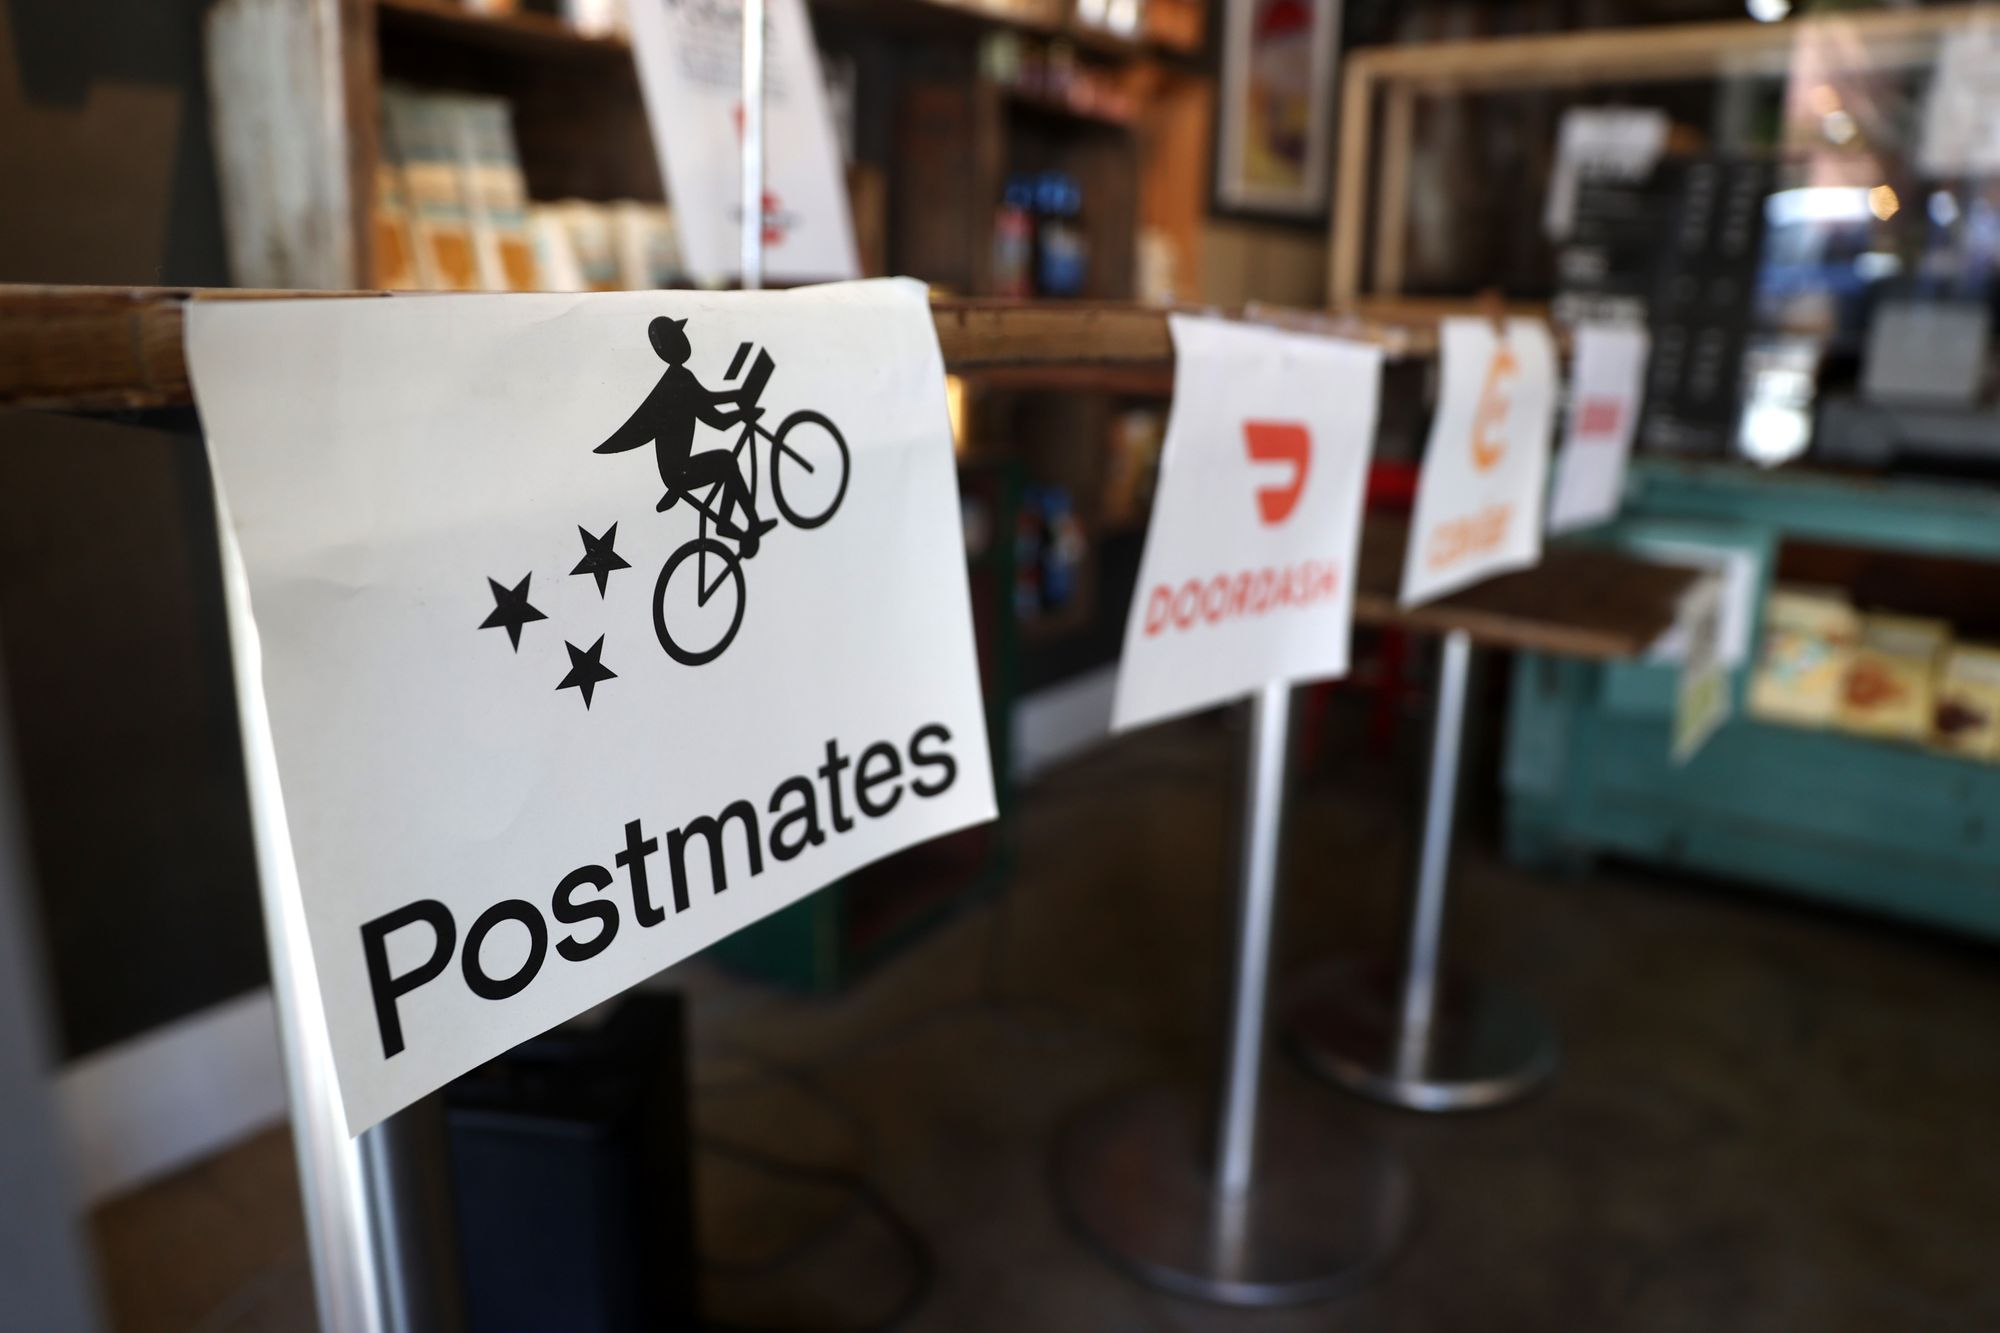 Uber Lays Off 15% of Postmates Staff, Just Two Months After Buying the Company